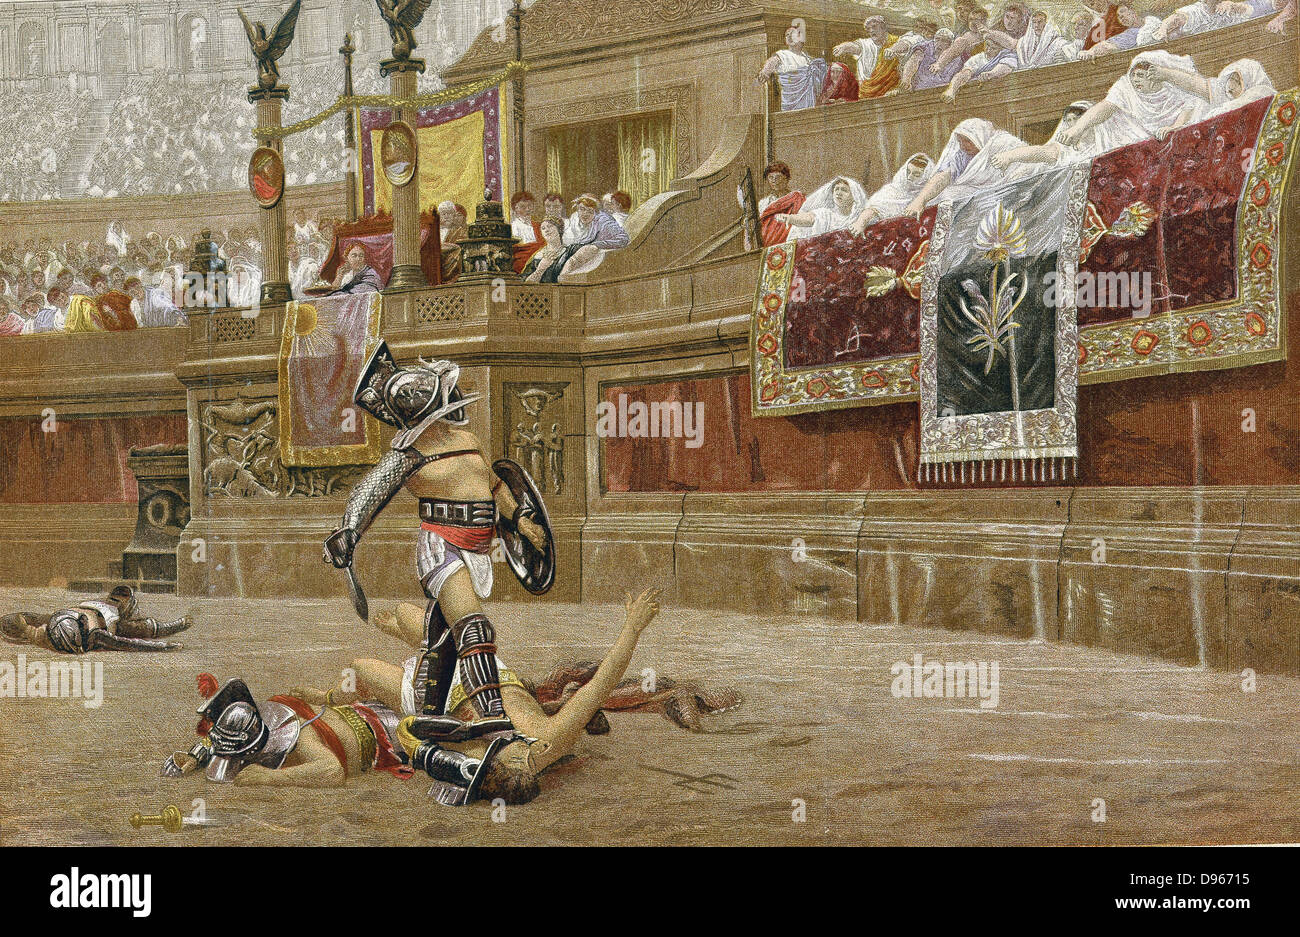 Gladiators in the Roman arena: spectators are giving the 'thumbs down', signalling the victor not to spare - Stock Image